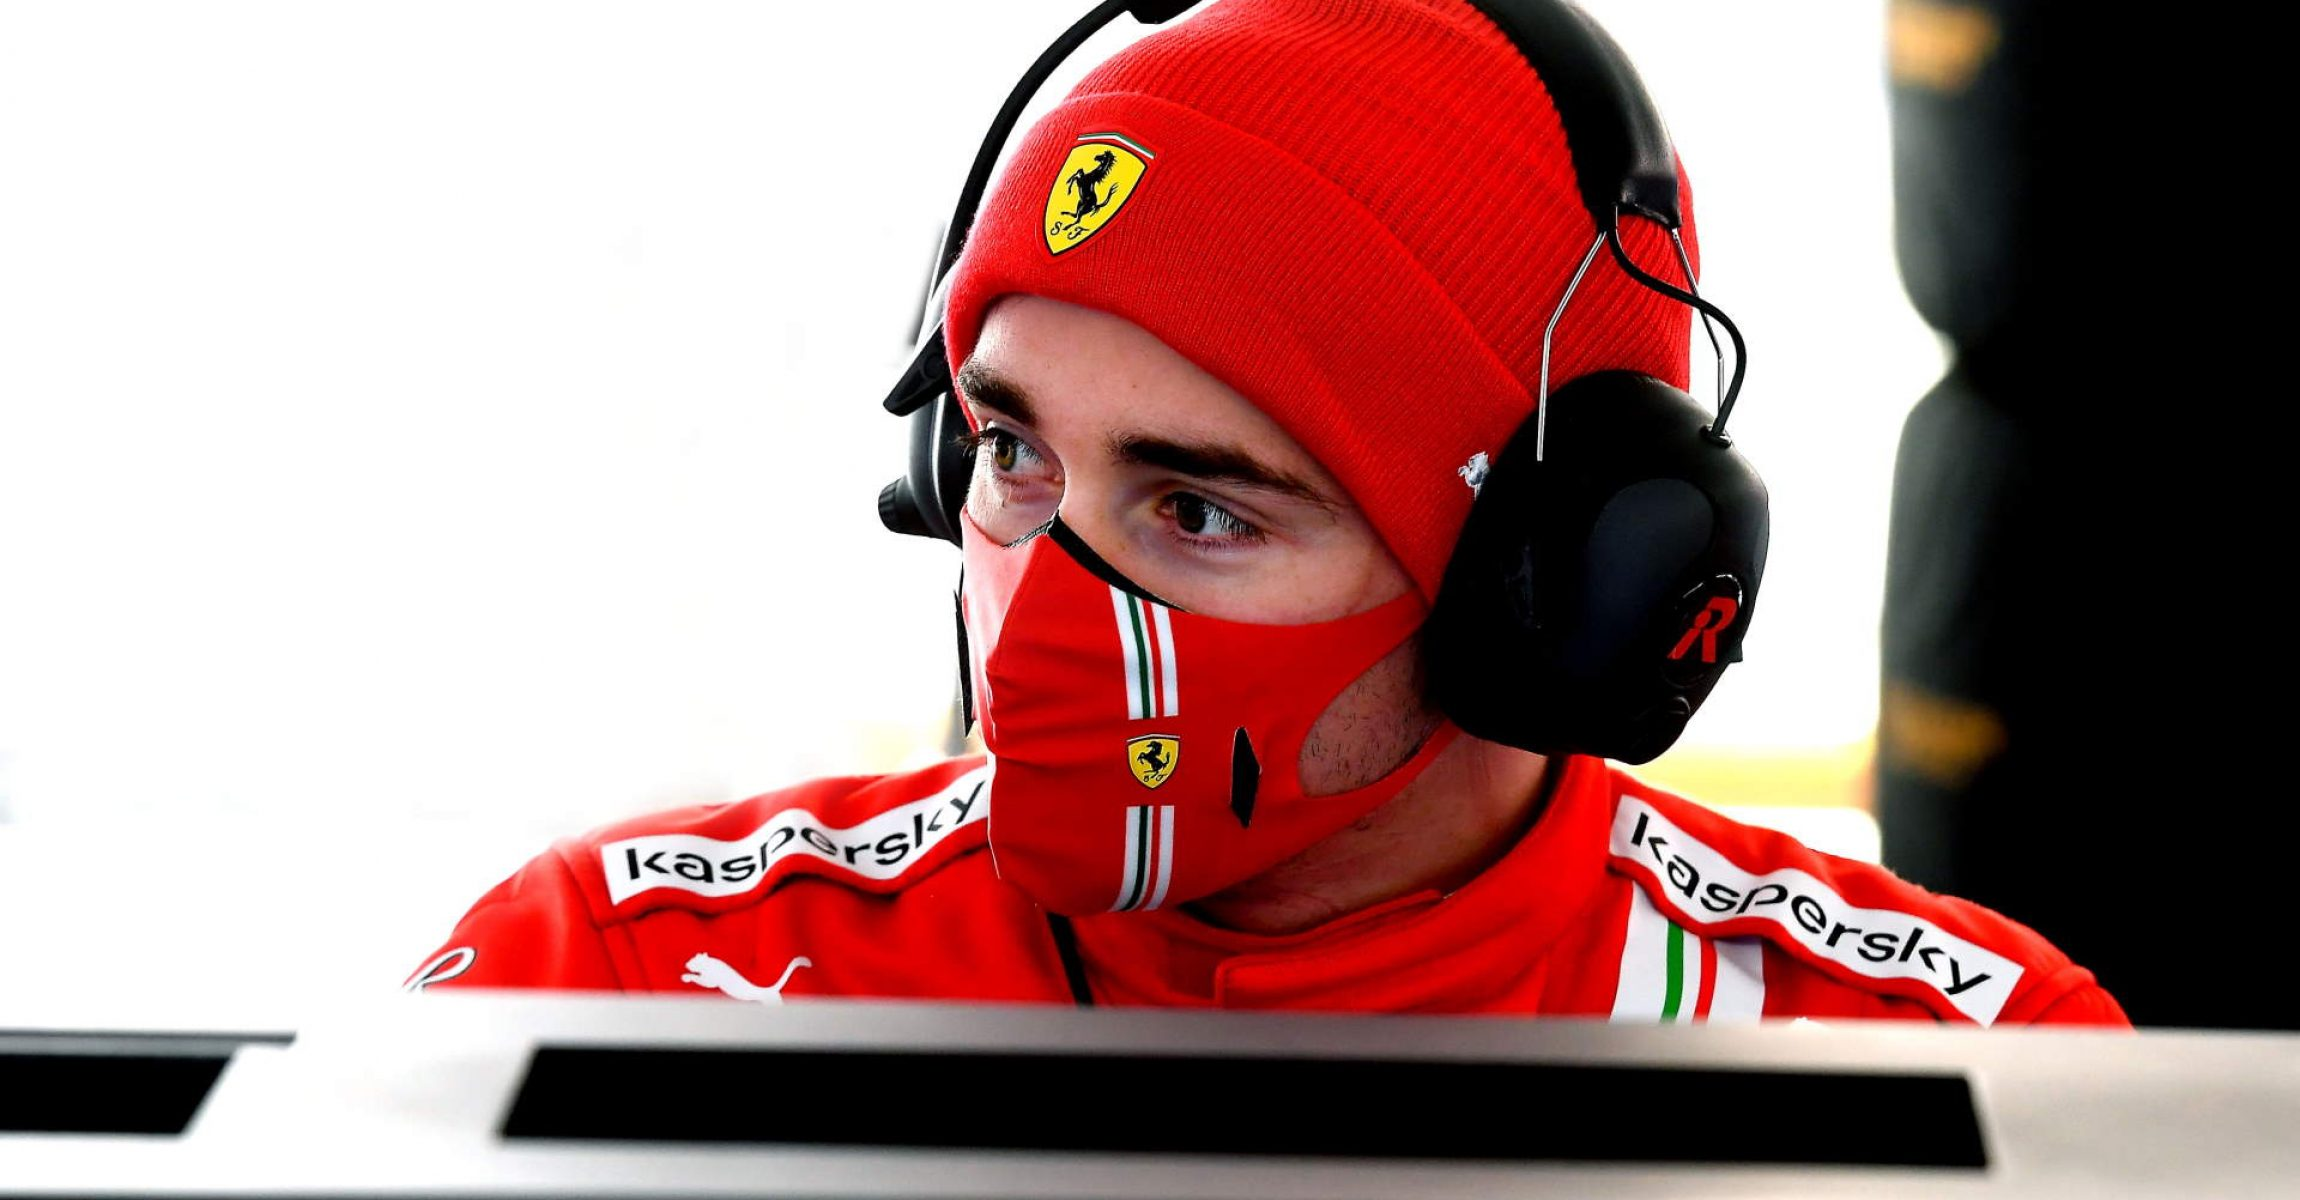 F1 TEST FIORANO - MARTEDì 26/01/21 - CHARLES LECLERC  credit: @Scuderia Ferrari Press Office